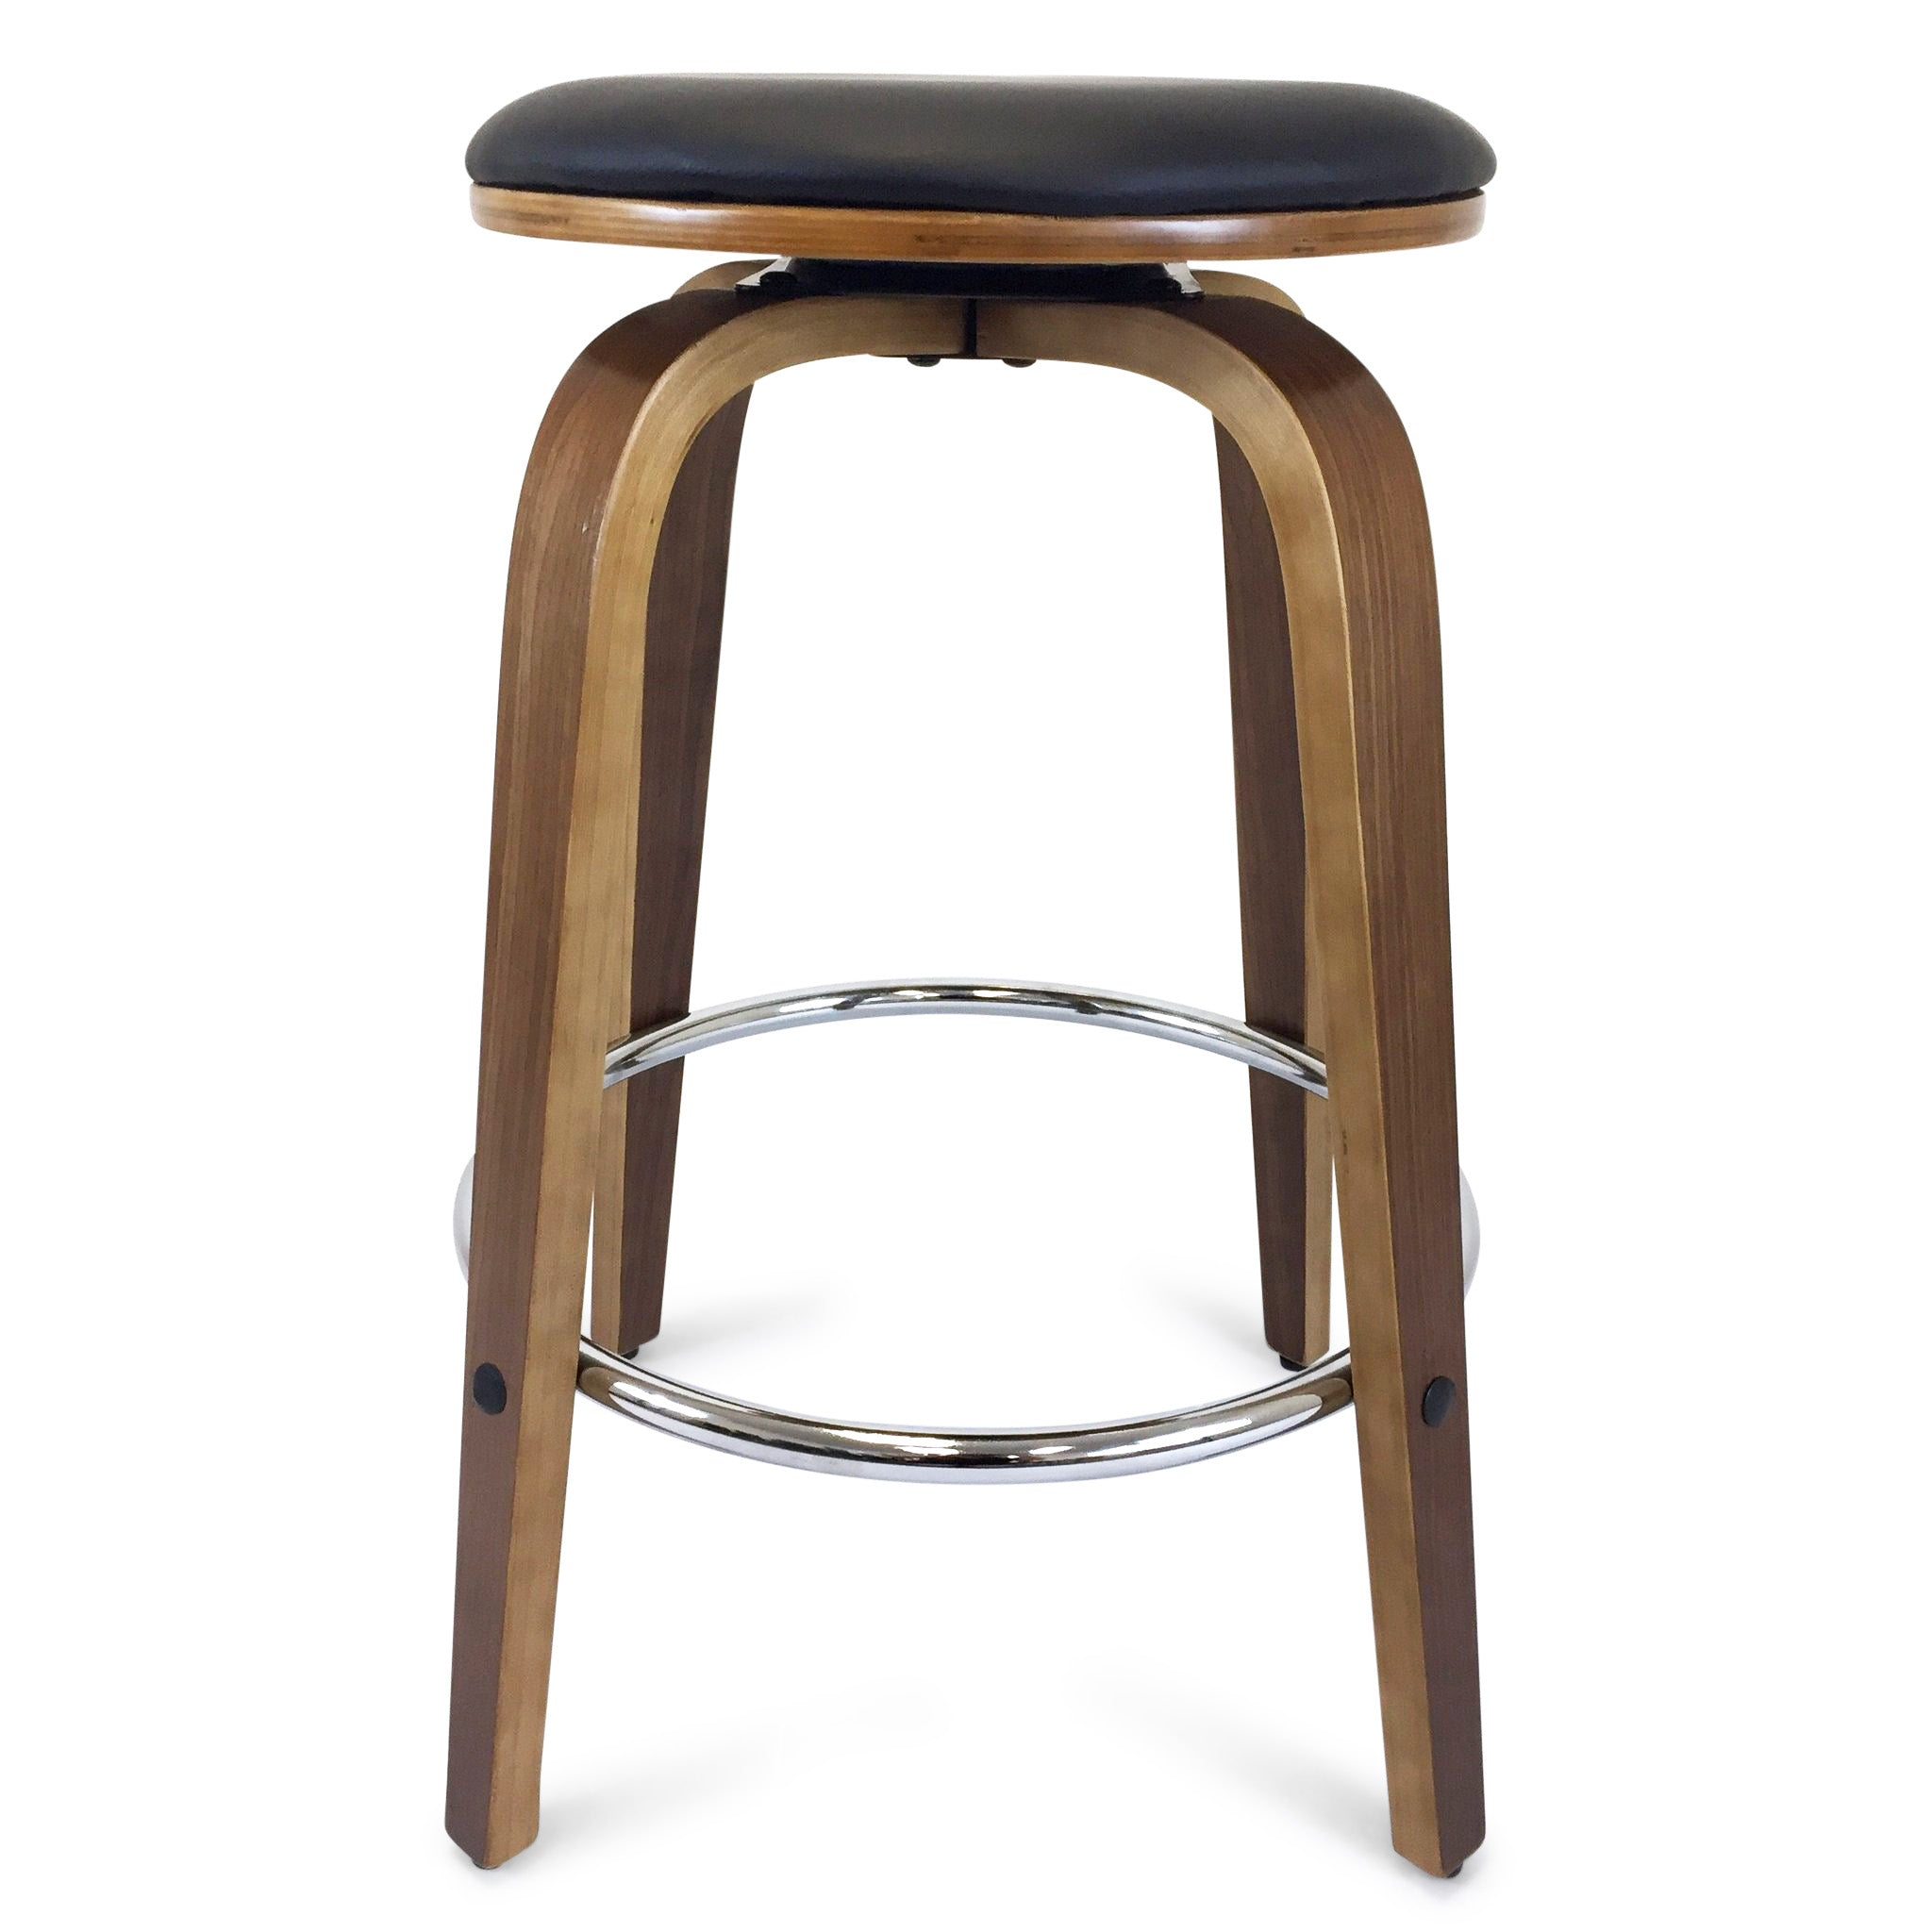 Miraculous Dani Leather Bar Stool In Walnut Black Andrewgaddart Wooden Chair Designs For Living Room Andrewgaddartcom